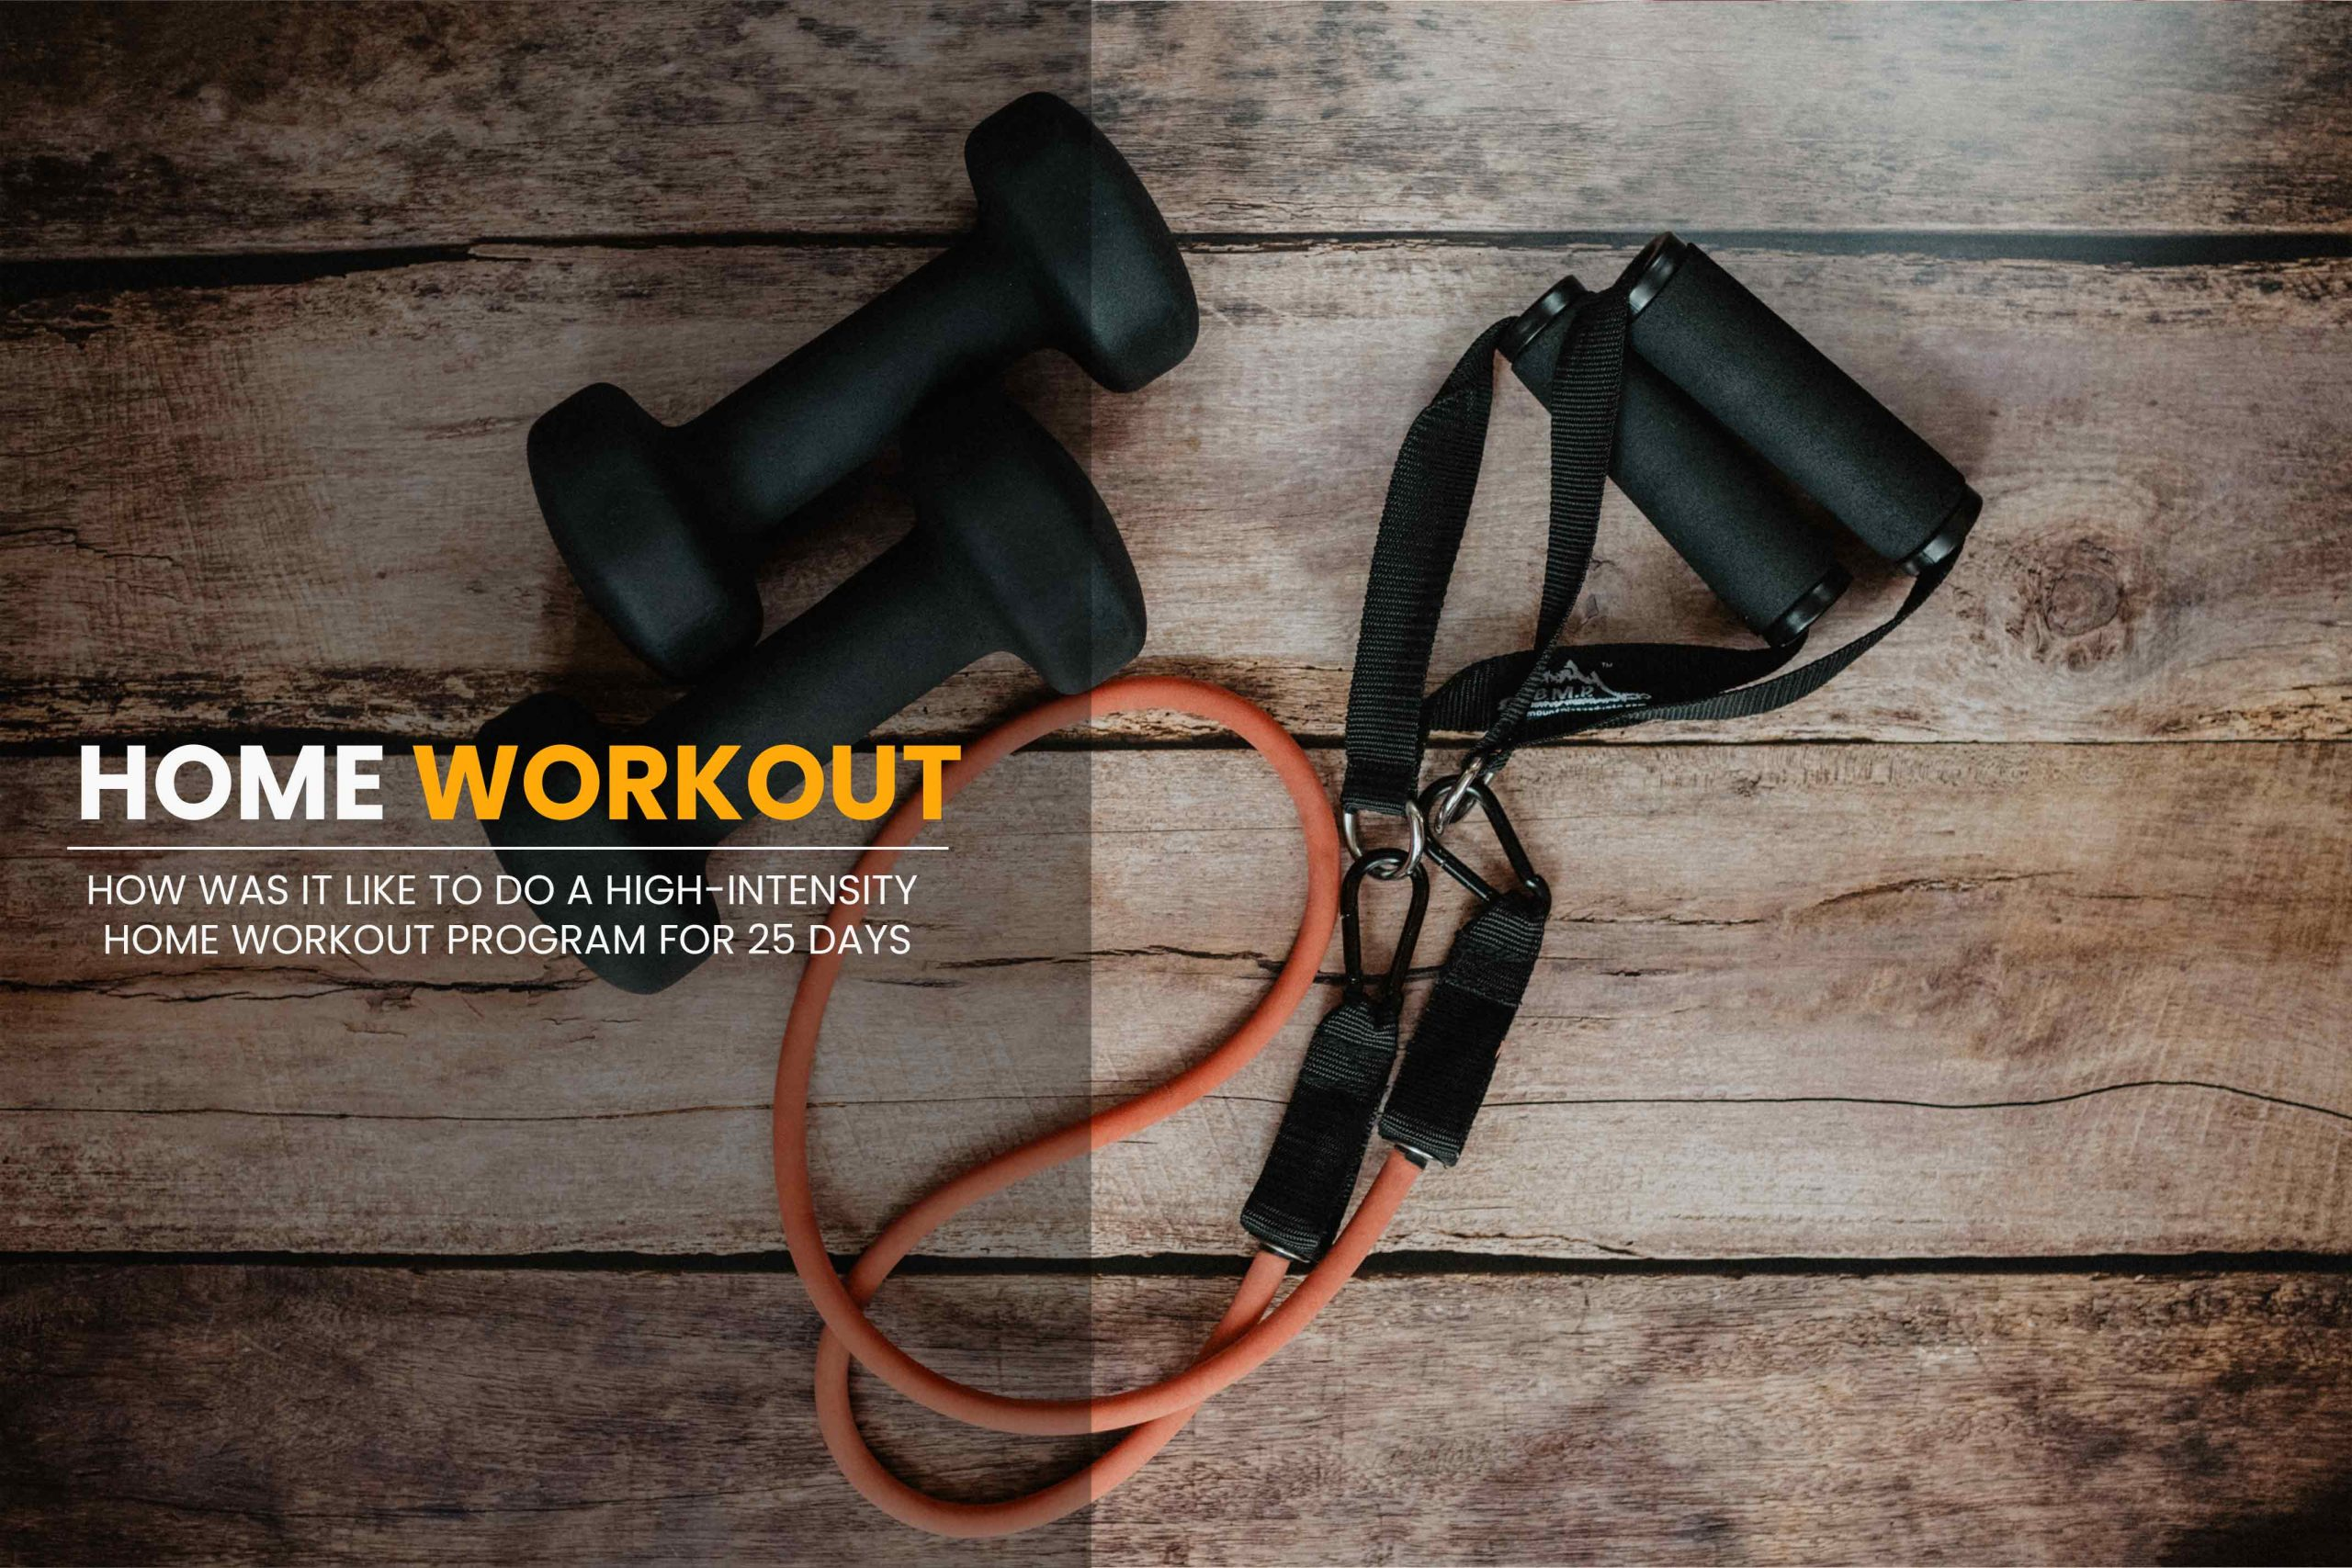 How was it like to do a high-intensity home workout program for 25 Days